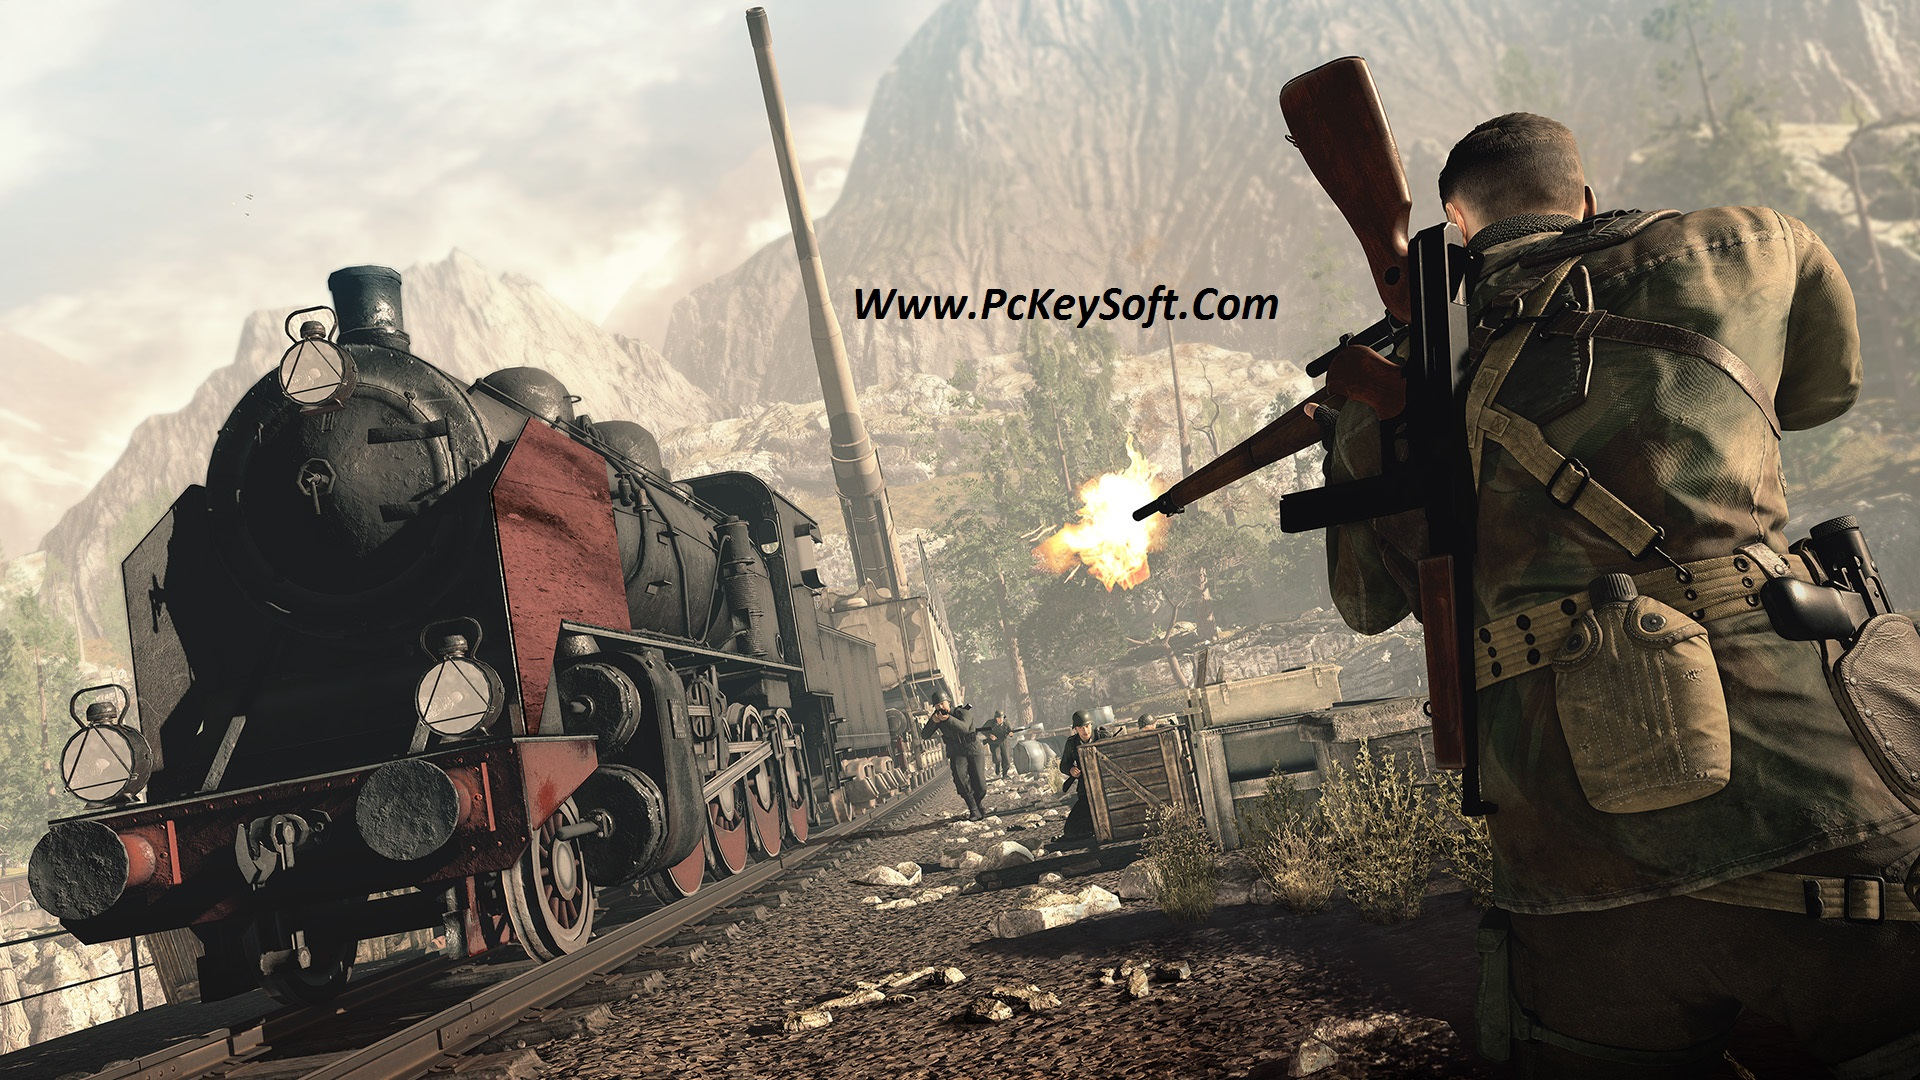 sniper-elite-4-crack-download-pc-game-full-version-www-pckeysoft-com